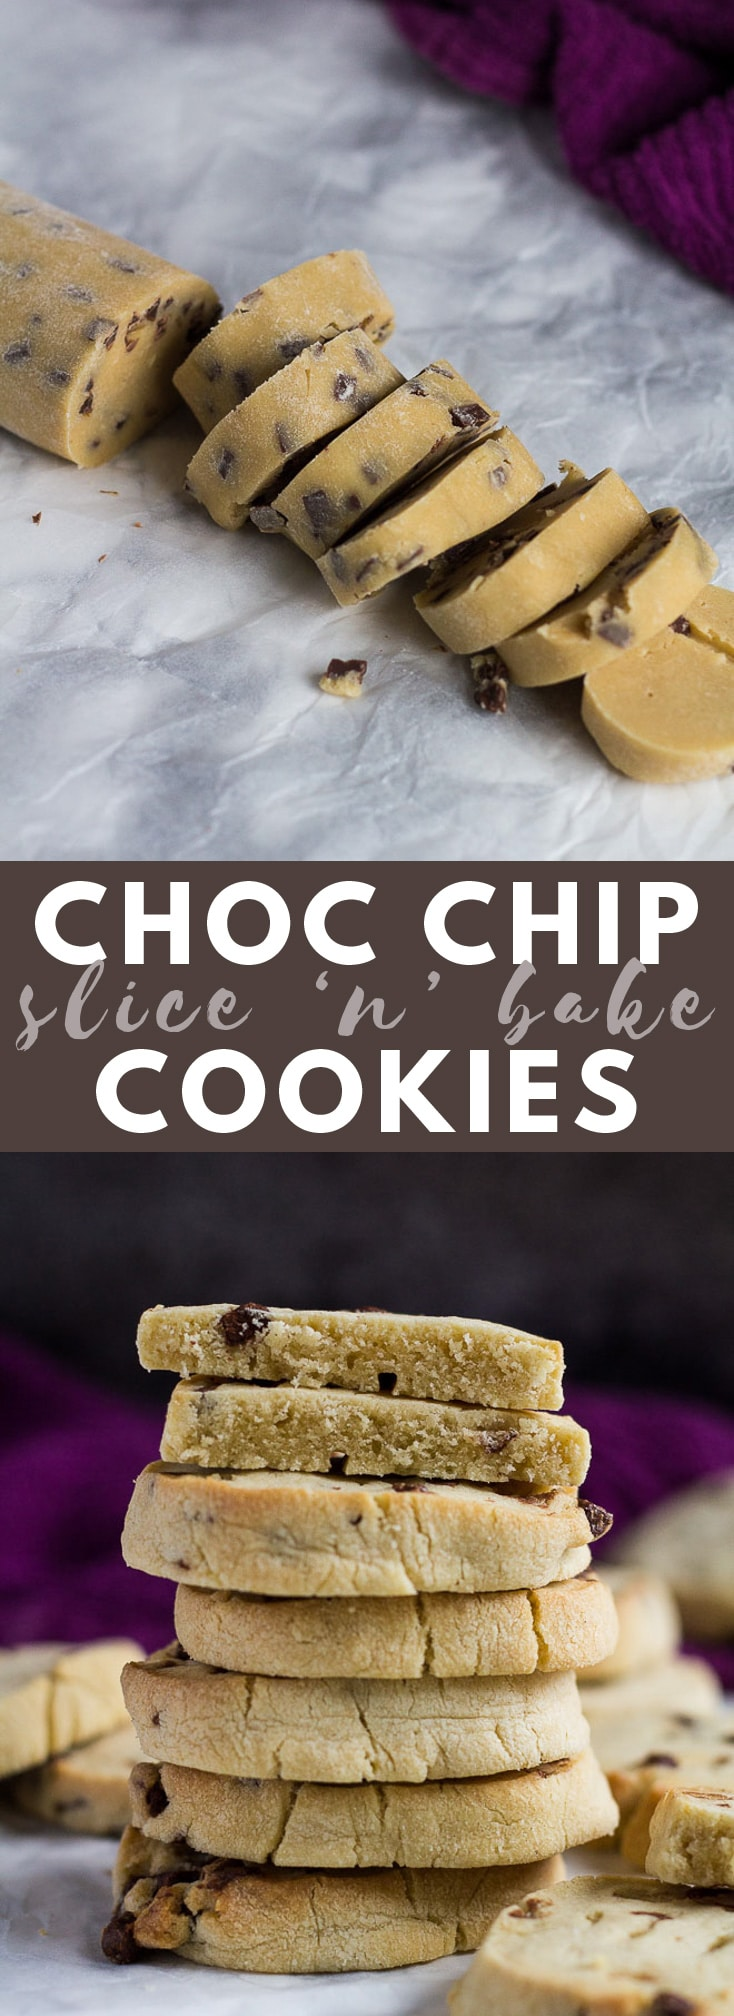 Chocolate Chip Slice 'n' Bake Cookies- Deliciously buttery, melt-in-your-mouth cookies stuffed full of chocolate chips! #chocolatechipcookies #cookierecipes #cookies